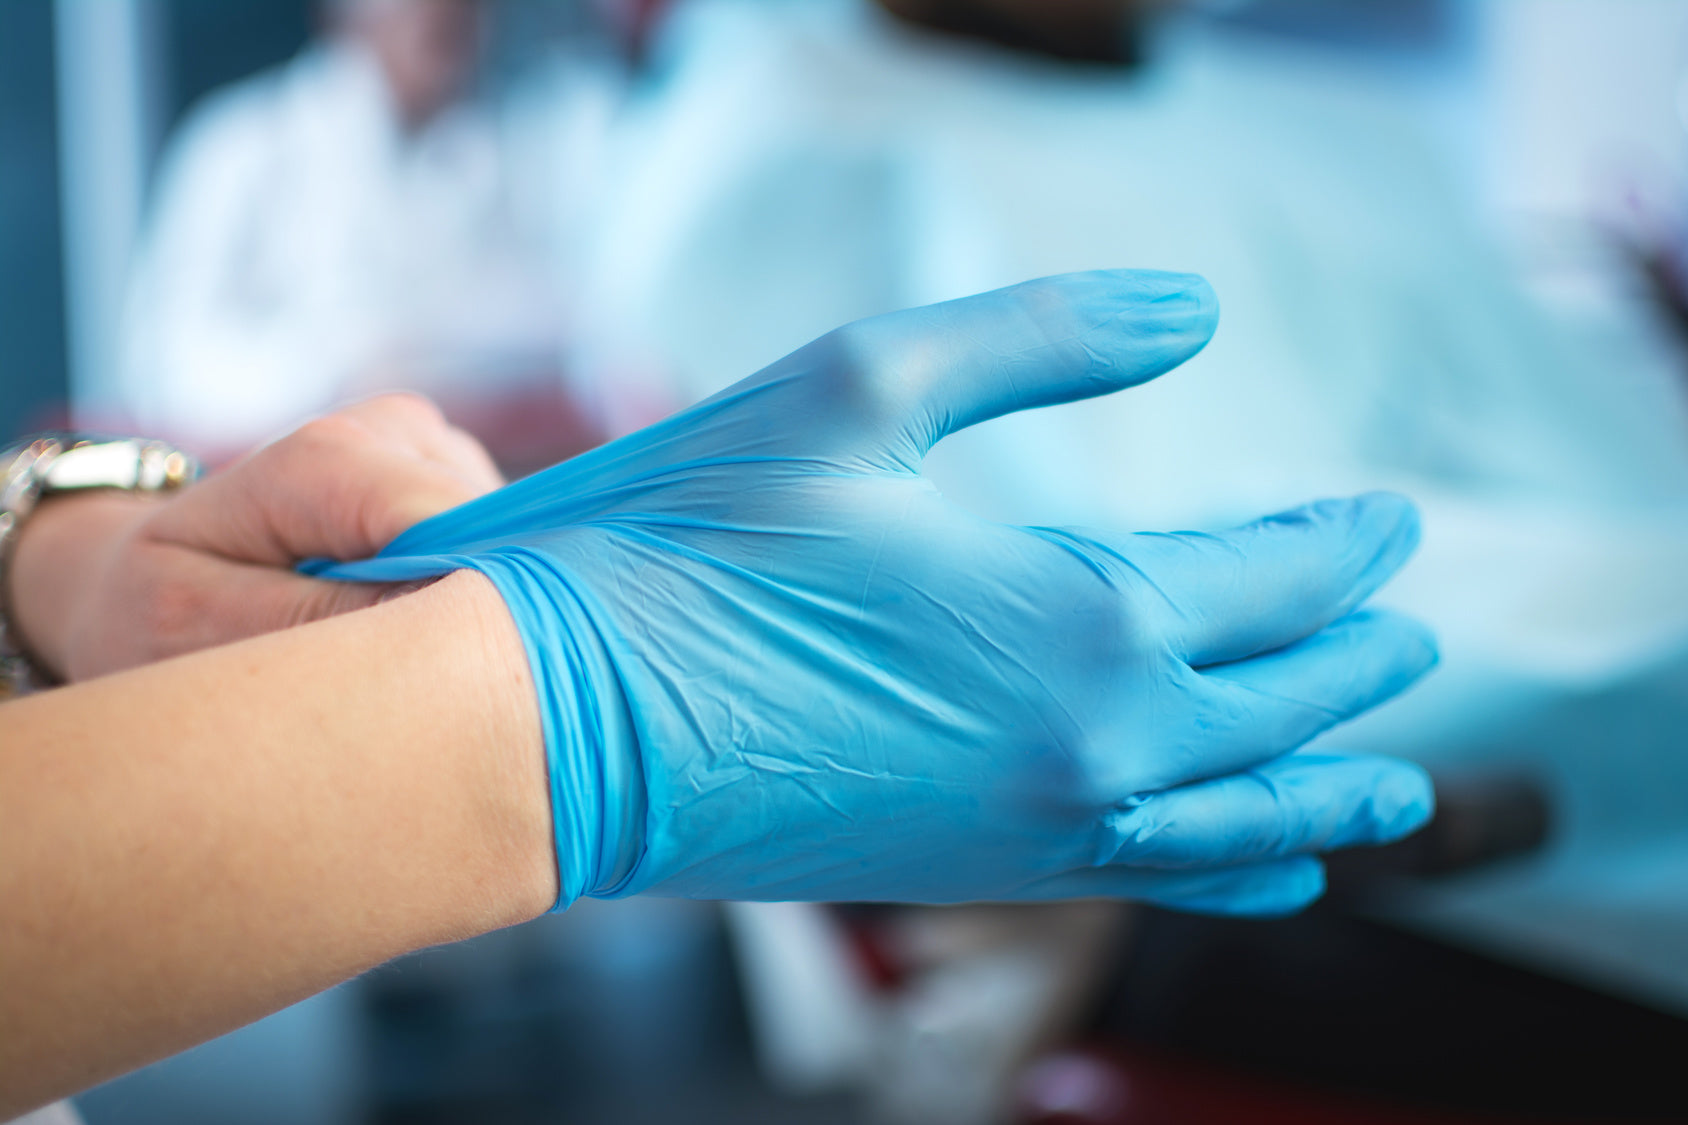 How to Select Surgical Gloves for Latex Allergies